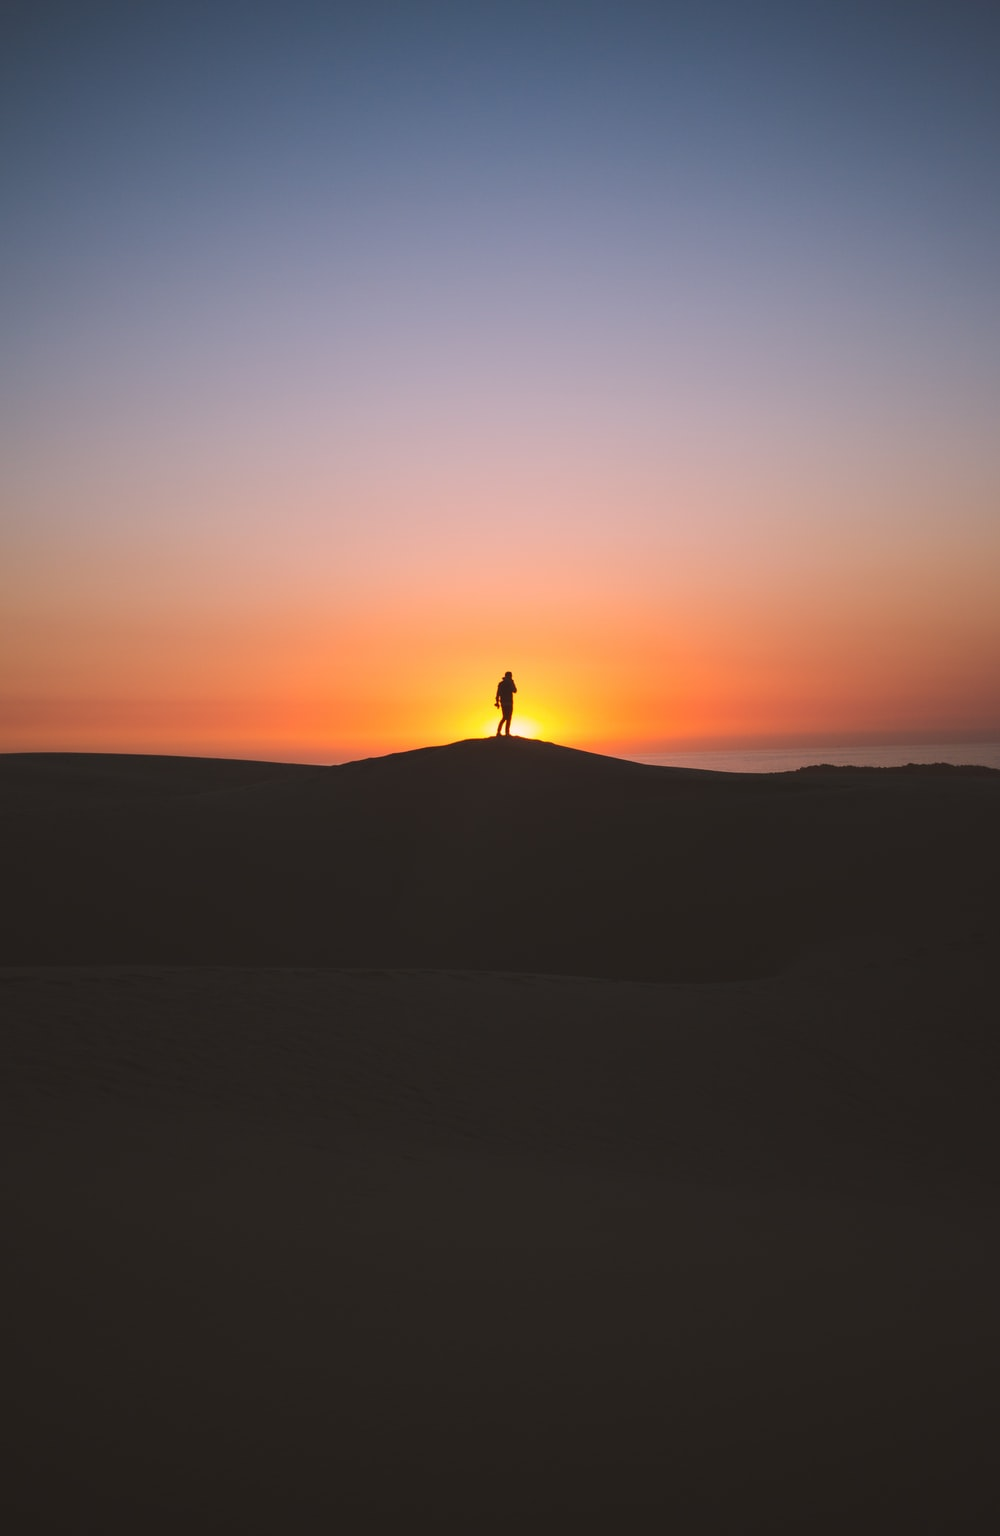 silhouette of person standing on hill